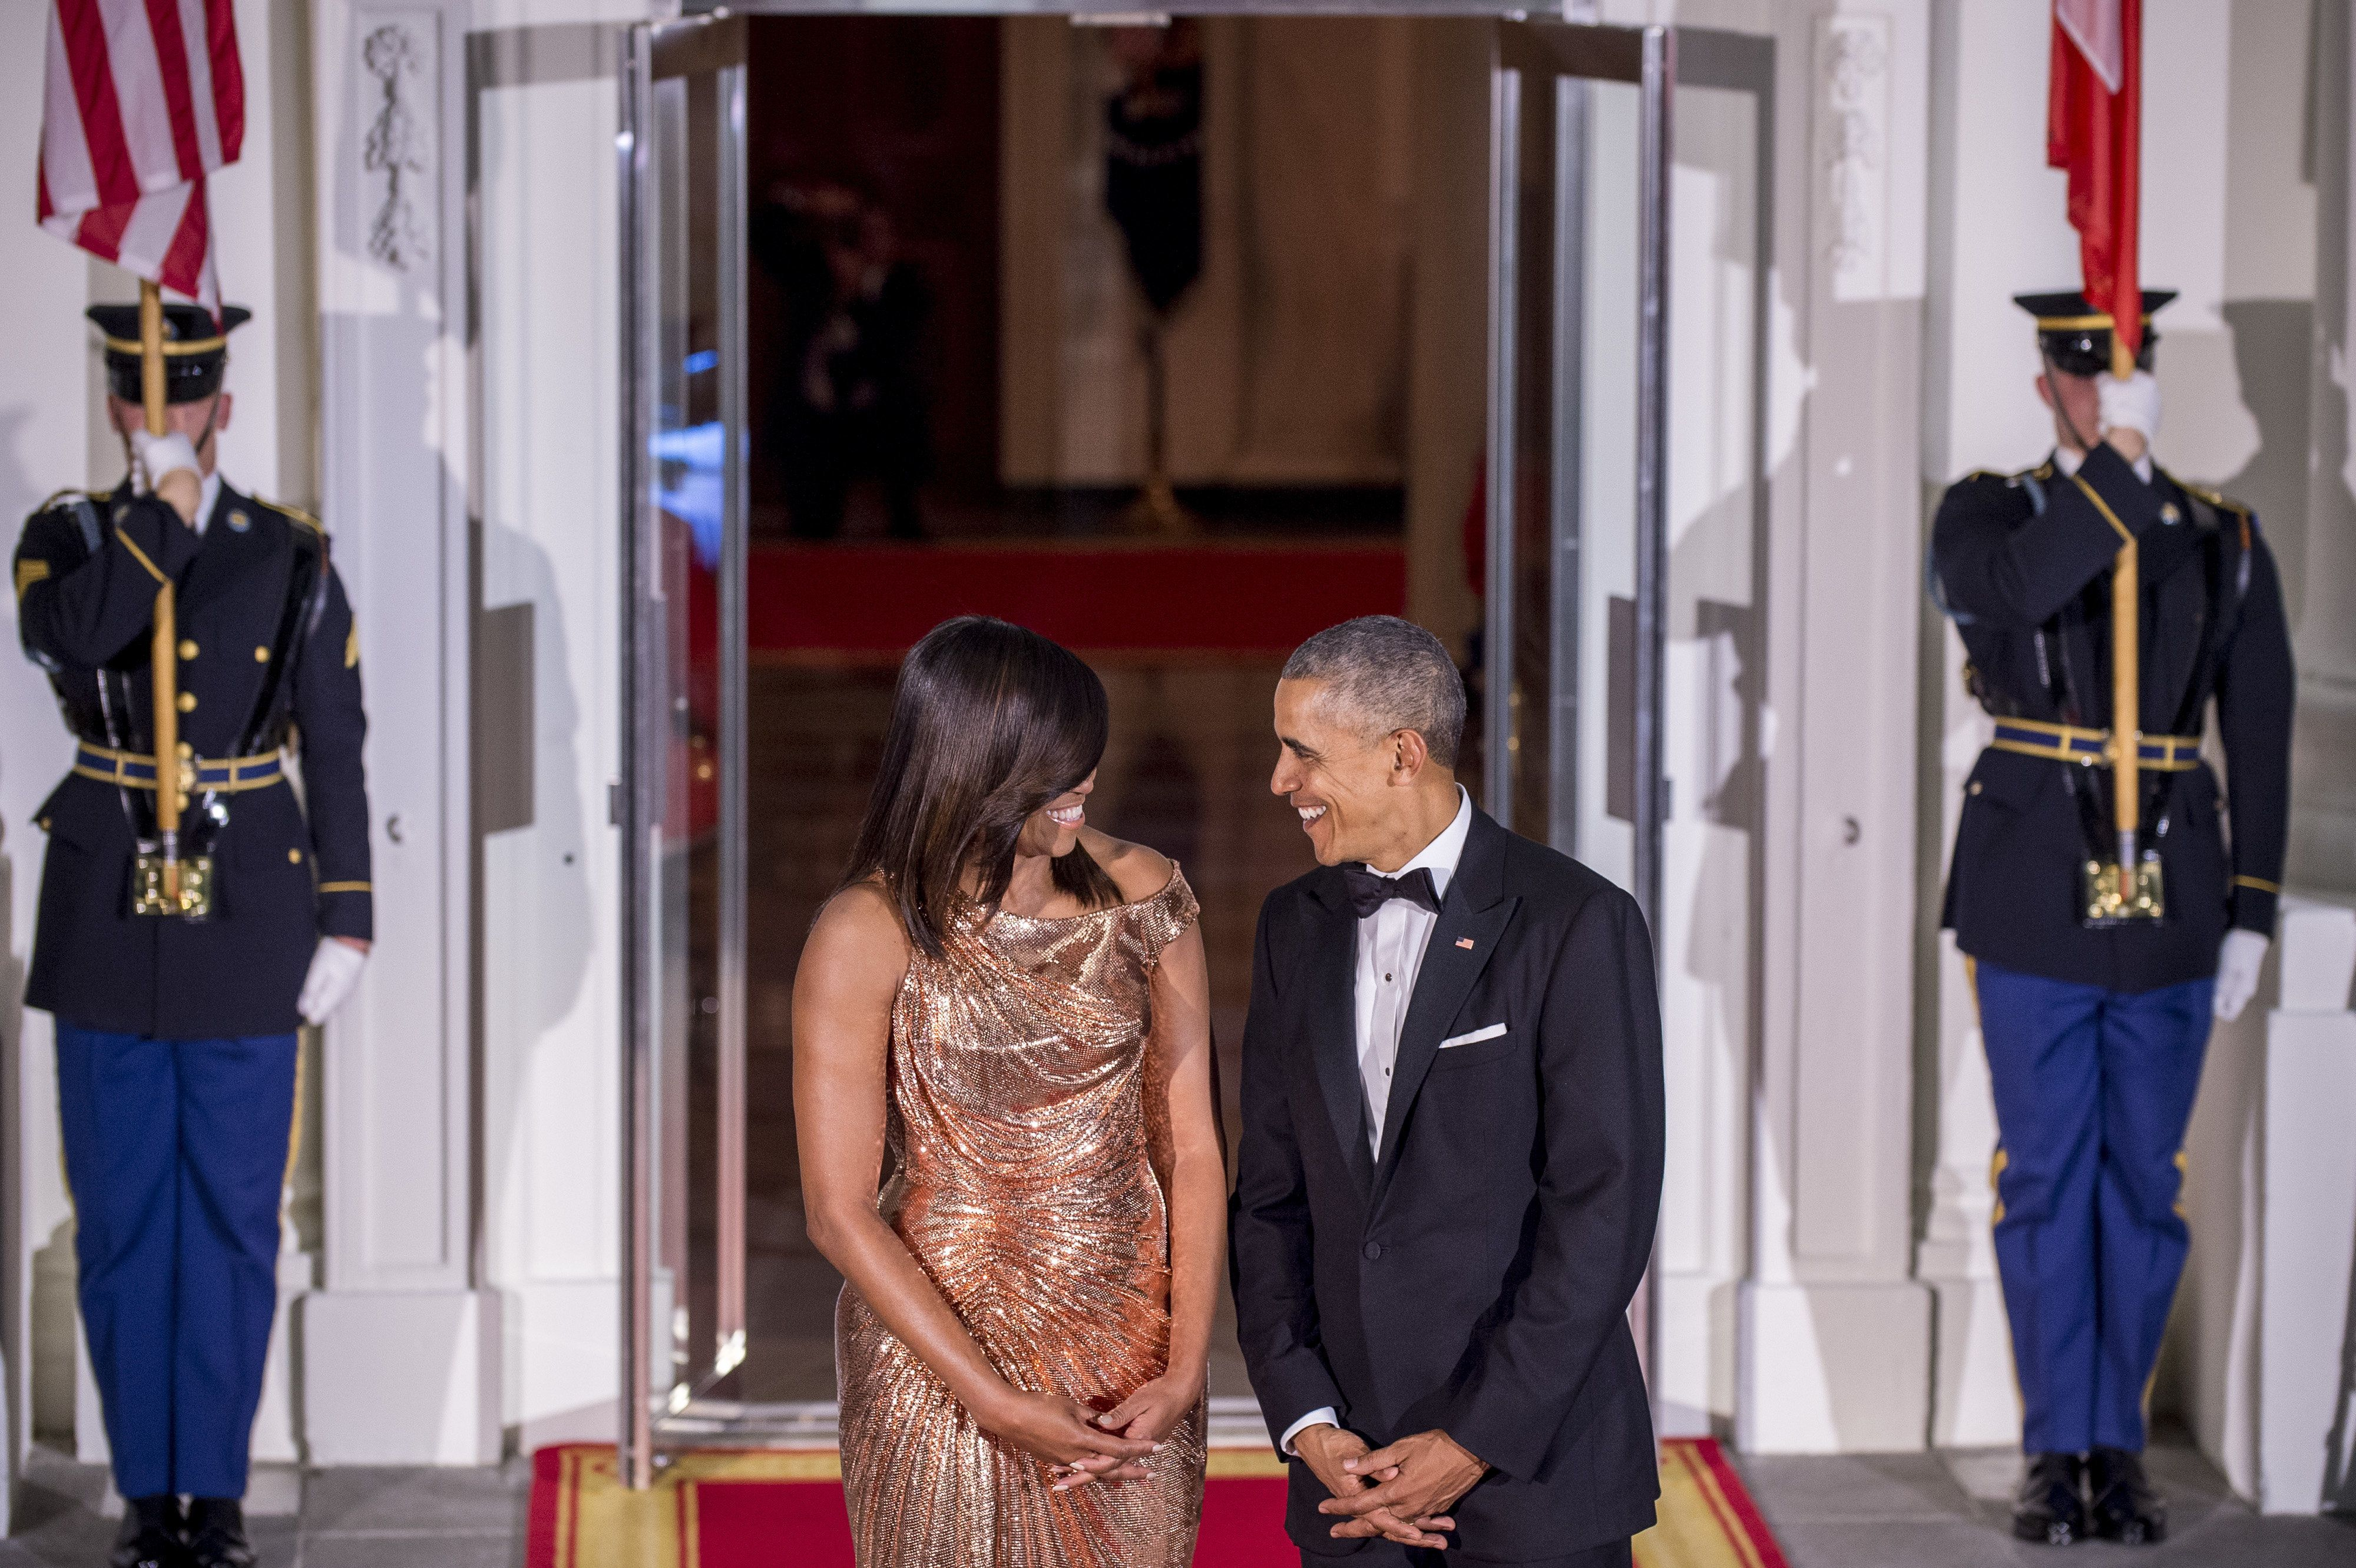 U.S. President Barack Obama, right, and First Lady Michelle Obama smile as they wait for the arrival of Matteo Renzi, Italy's prime minister, and his wife Agnese Landini on the North Portico of the White House in Washington, D.C., U.S., on Tuesday, Oct. 18, 2016. 'We are proud to call you allies and friends today and always,' U.S President Obama said as he welcomed Renzi to the White House for what he says is the last state dinner of his term. Photographer: Pete Marovich/Bloomberg via Getty Images